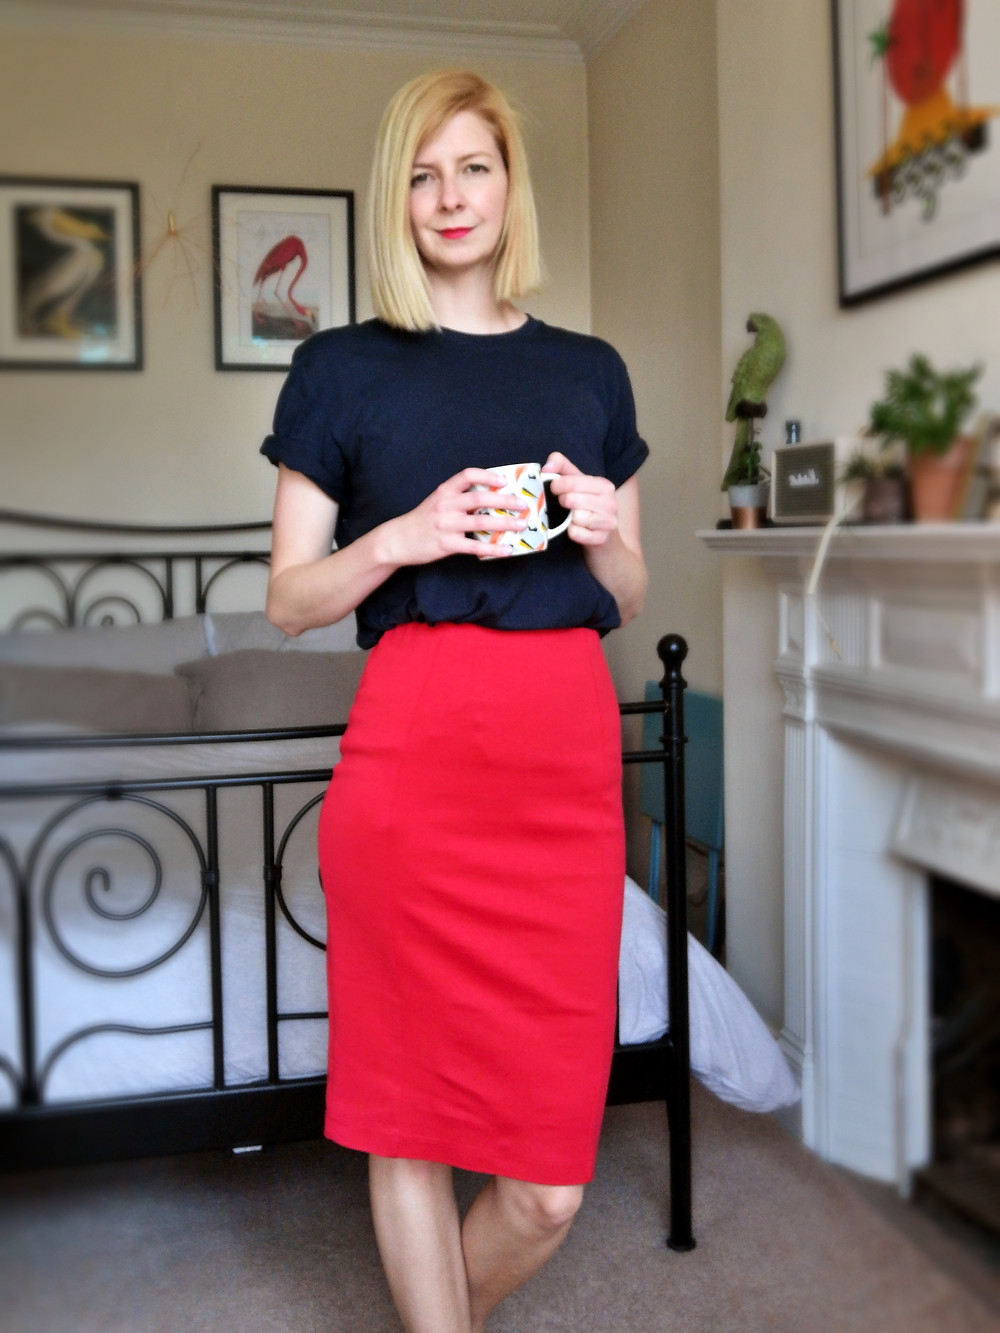 Pencil skirt - working from home wardrobe